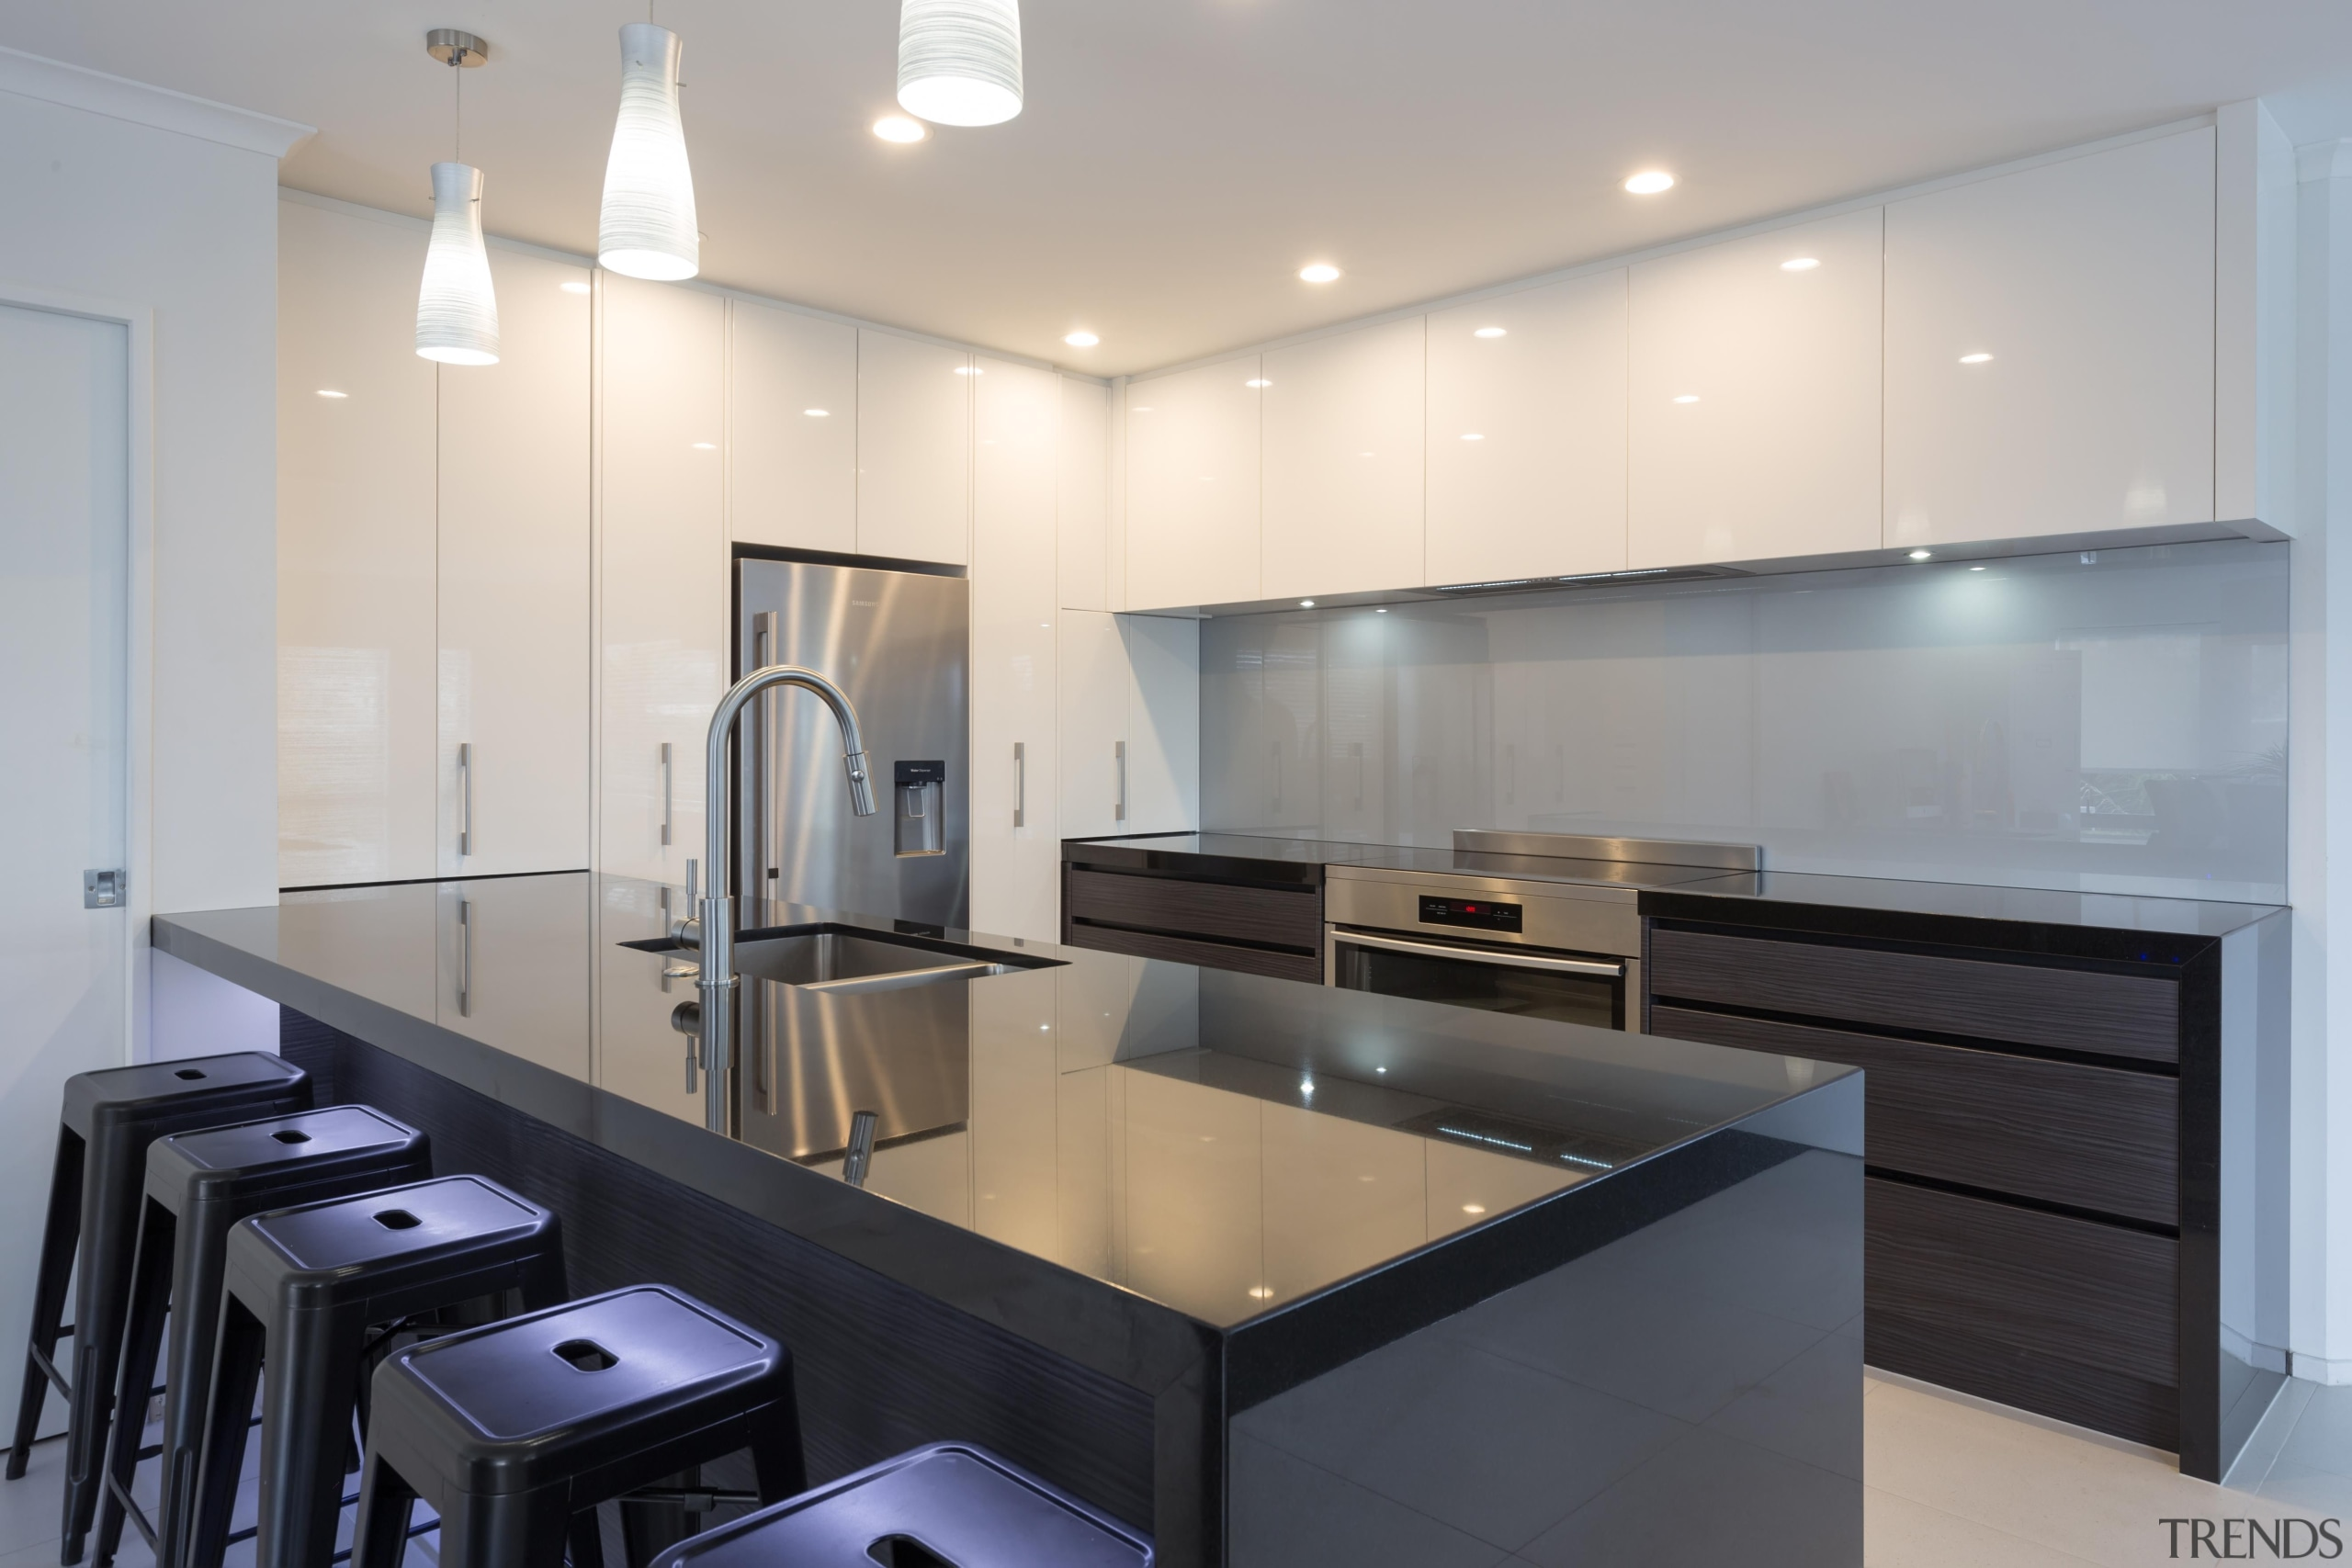 img5348.jpg - img5348.jpg - cabinetry | countertop | cabinetry, countertop, interior design, kitchen, product design, real estate, room, gray